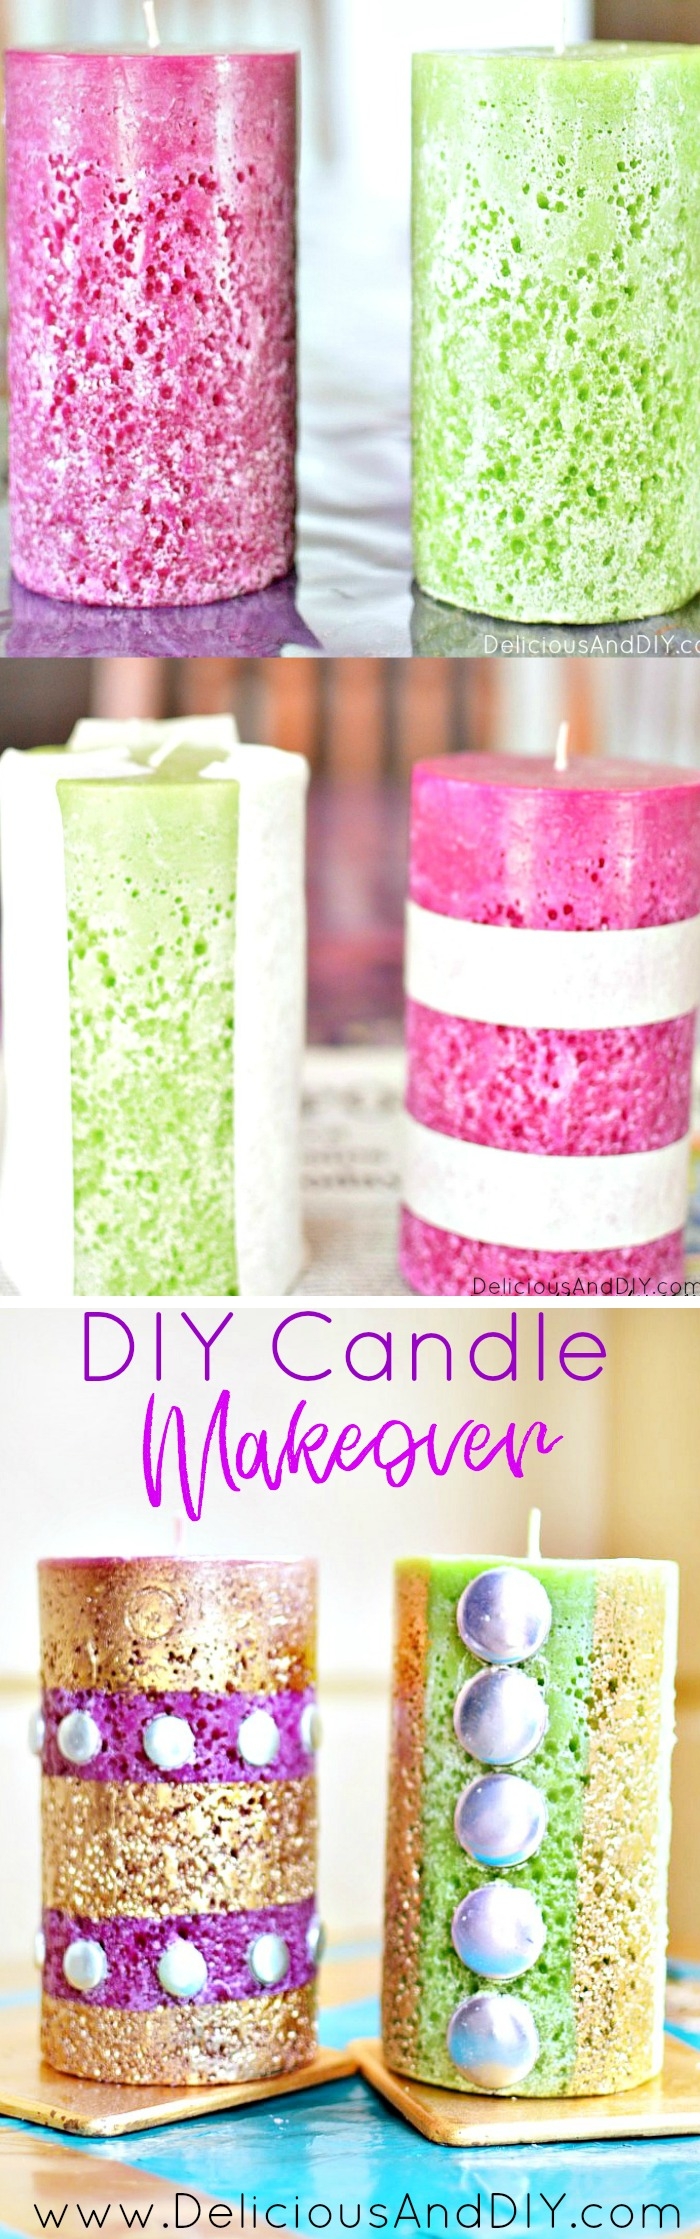 DIY Candle Makeover using Masking Tape and Gold Spray Paint| Candle Update| Candle Crafts| DIY Craft Ideas| Craft Ideas in under 15 minutes